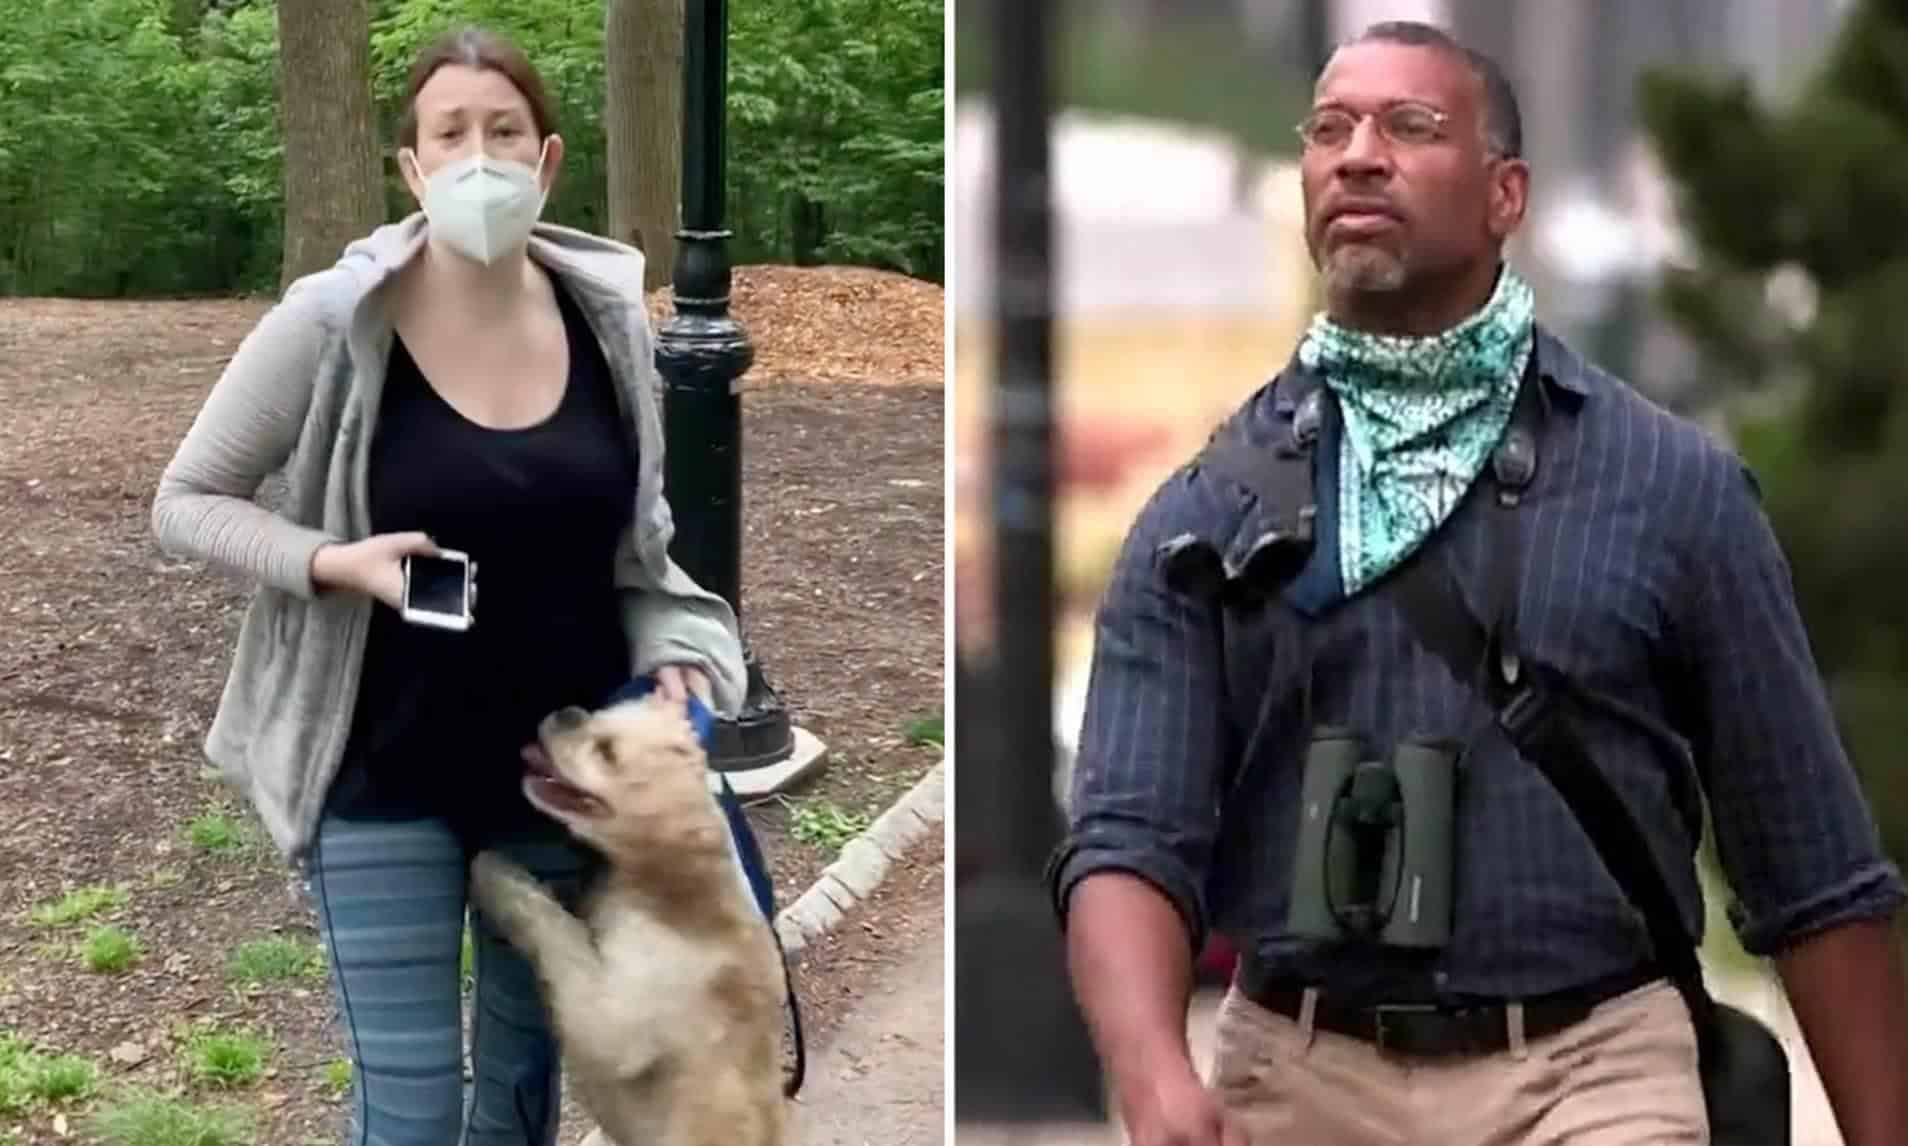 Central Park dog walker Amy Cooper charged over confrontation with black man